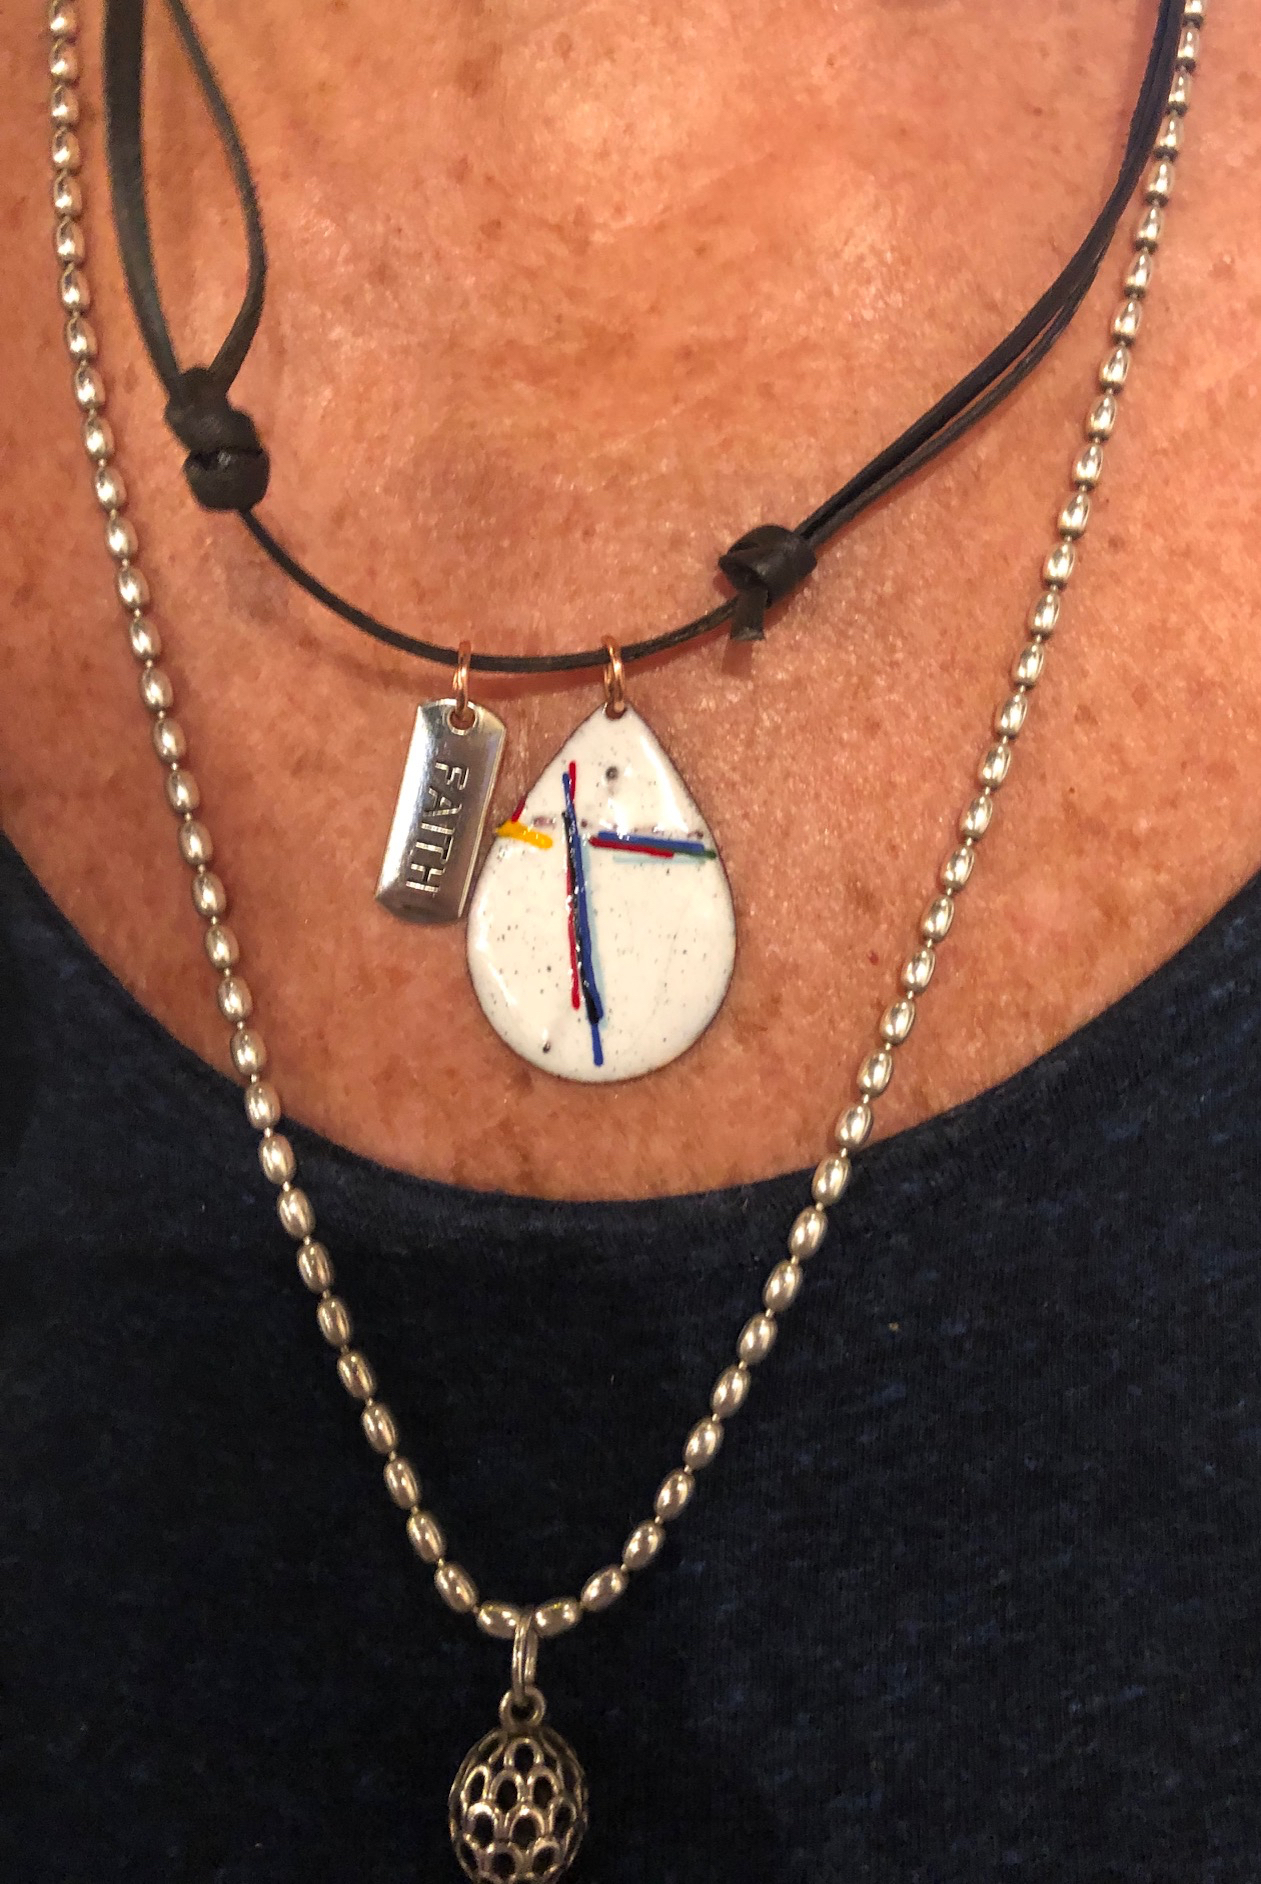 enamel necklace.jpg